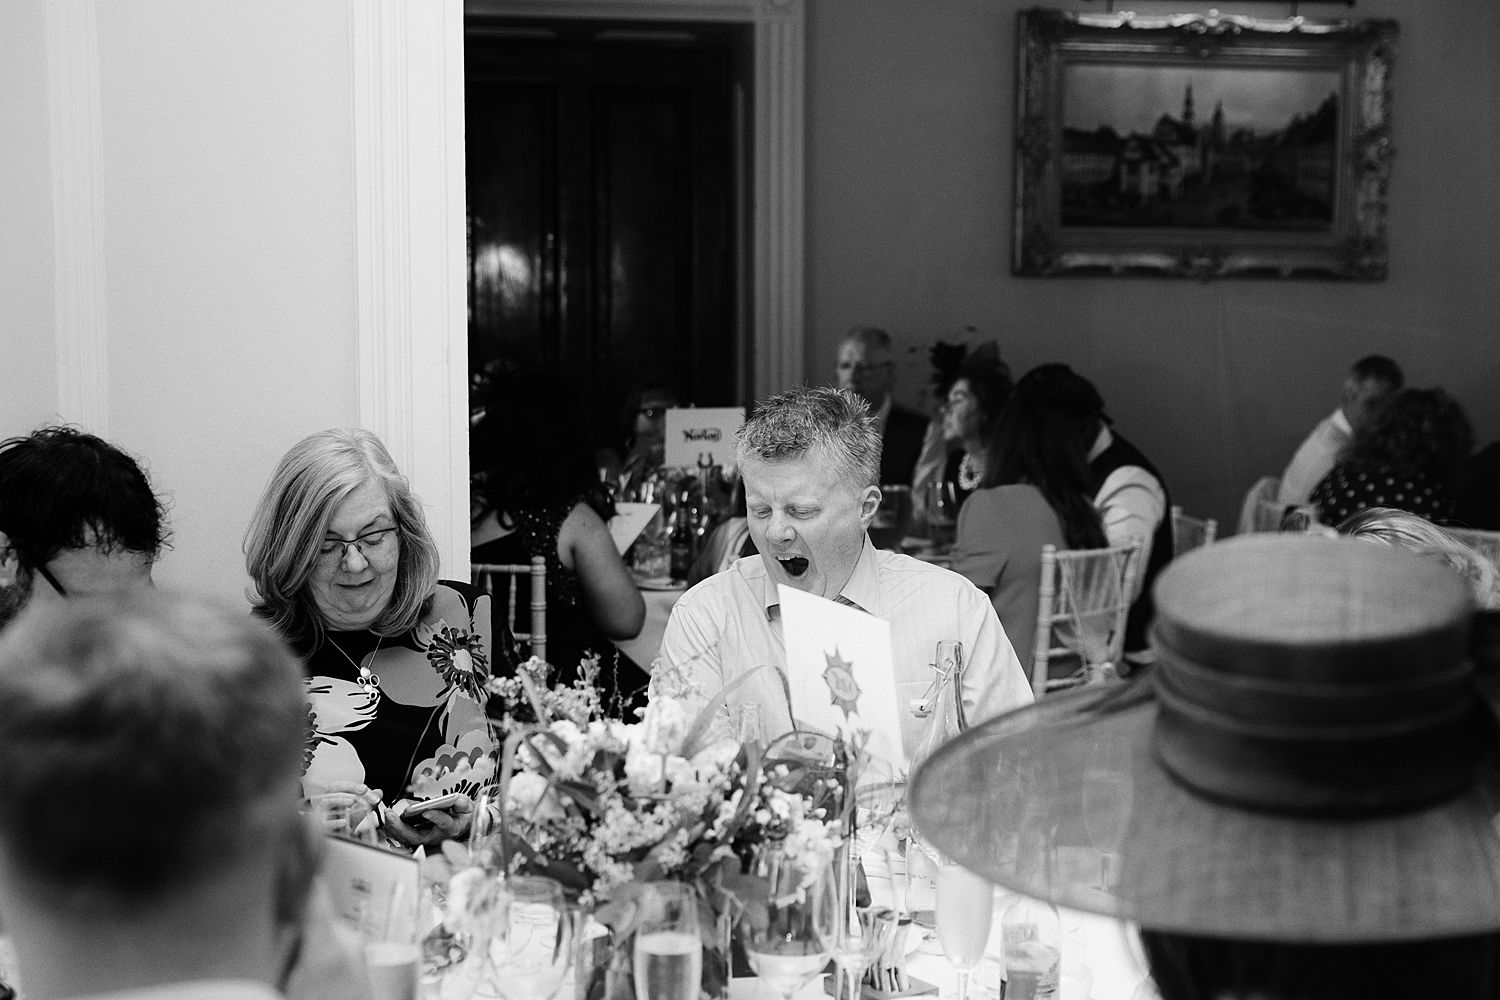 Guests seated at receptionat Storrs Hall, Lake District wedding venue